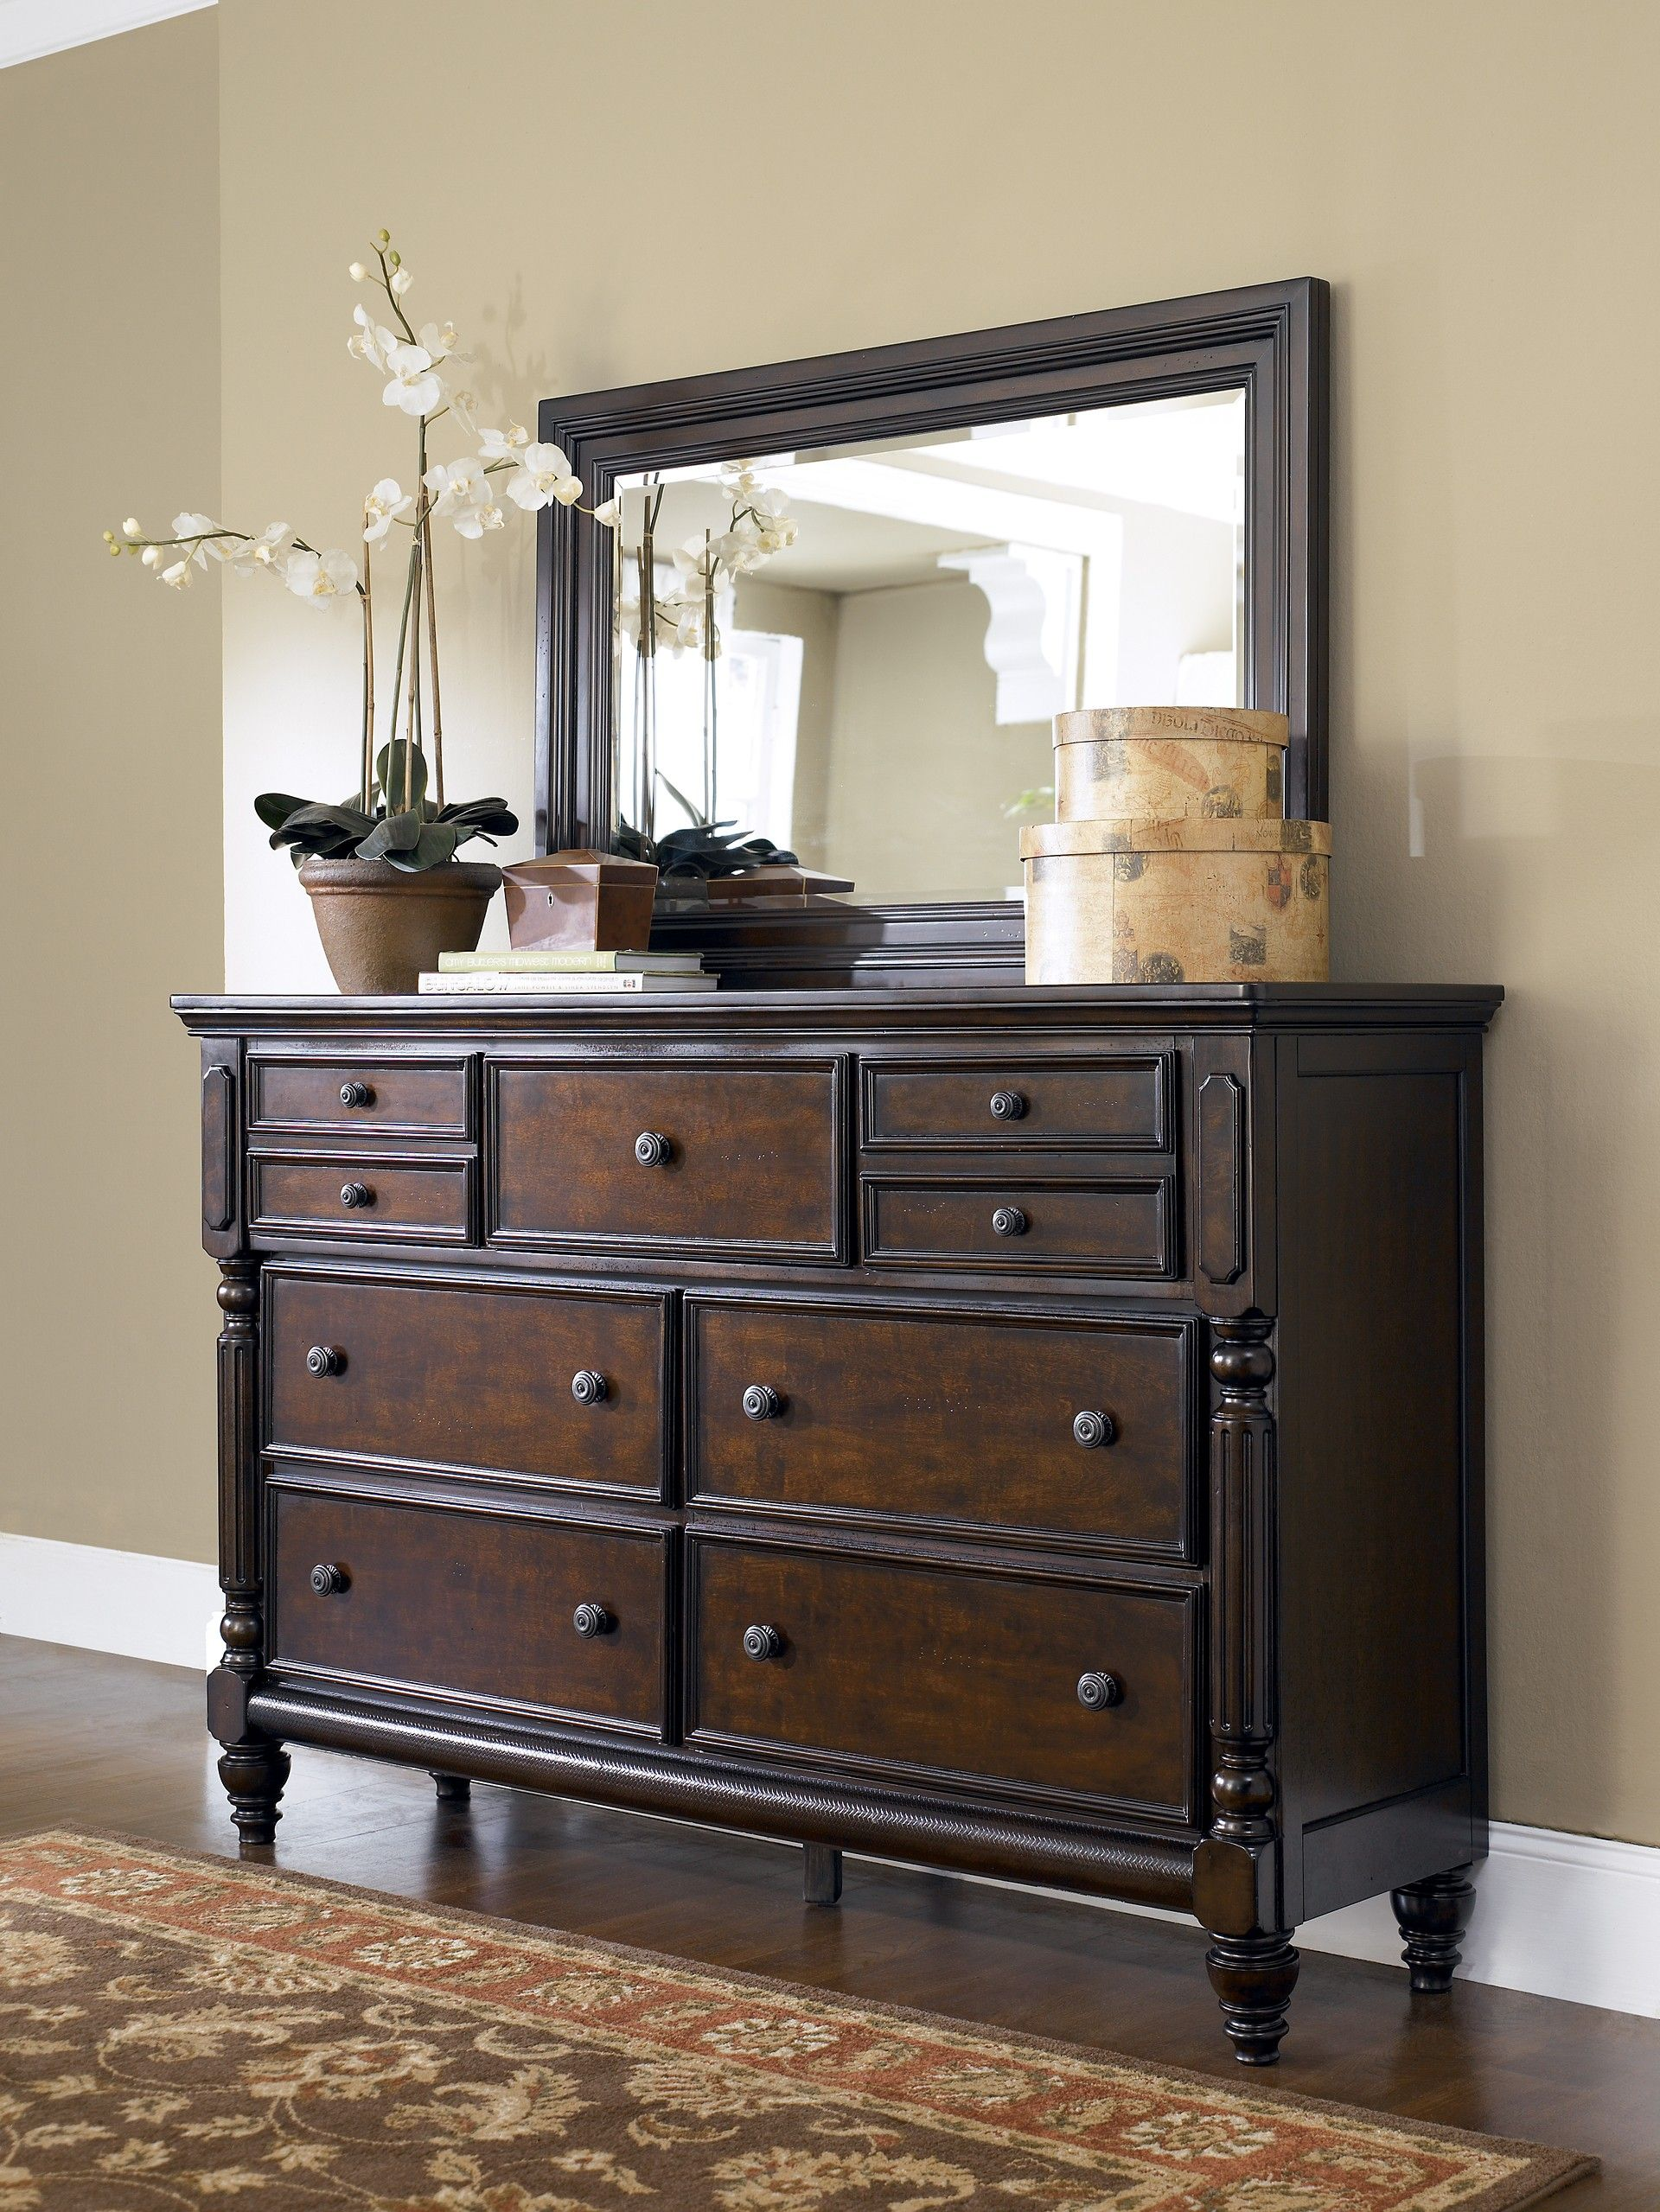 Ashley Key Town B668 31 Millennium Dresser   With Its Sophisticated Beauty,  Ornate Details And Classic Lines, The Key Town Collection By Ashley  Furniture ...